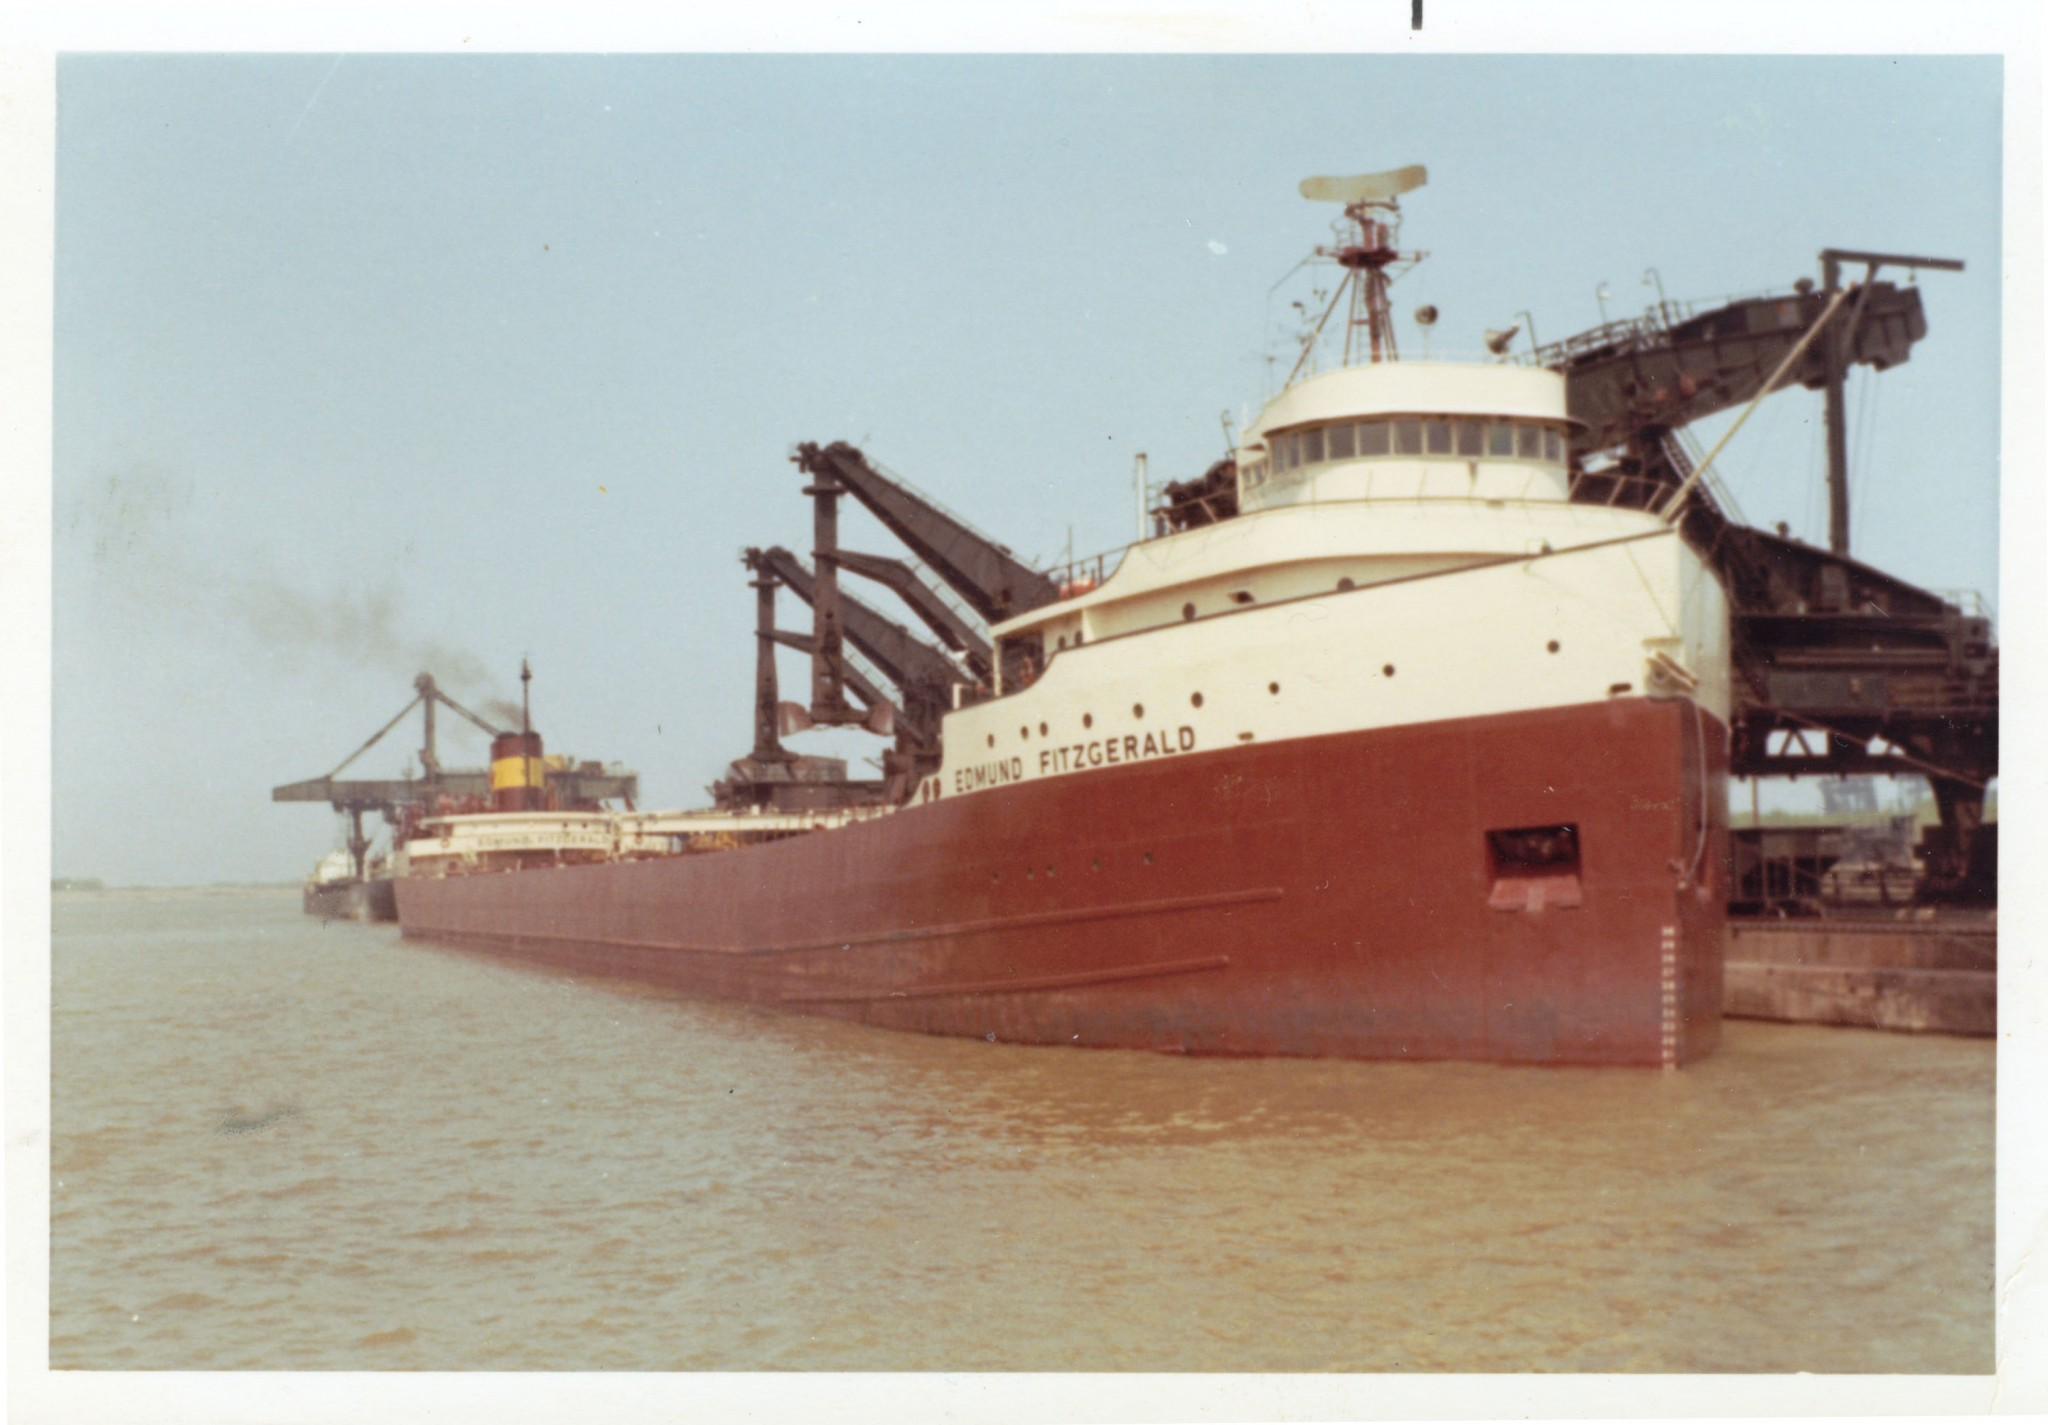 A photo of the S. S. Edmund Fitzgerald taken by Tom Parson, who is from Toledo and sailed on the Fitzgerald in the 1970s. (Photo courtesy of the National Museum of the Great Lakes)